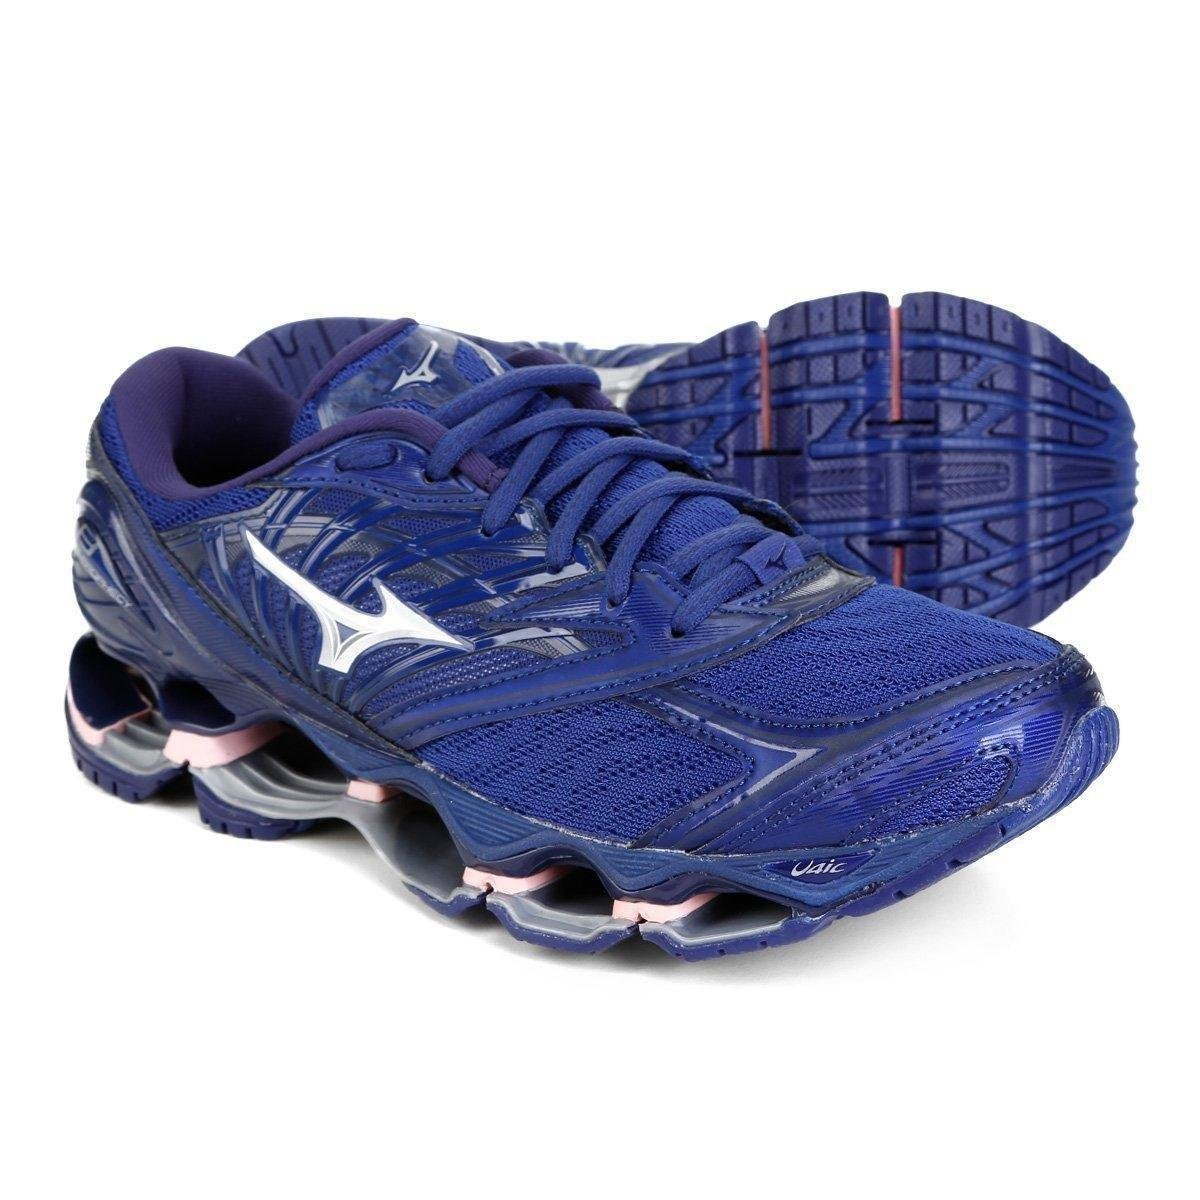 mizuno womens volleyball shoes size 8 x 3 free grey slabs 450 x 450